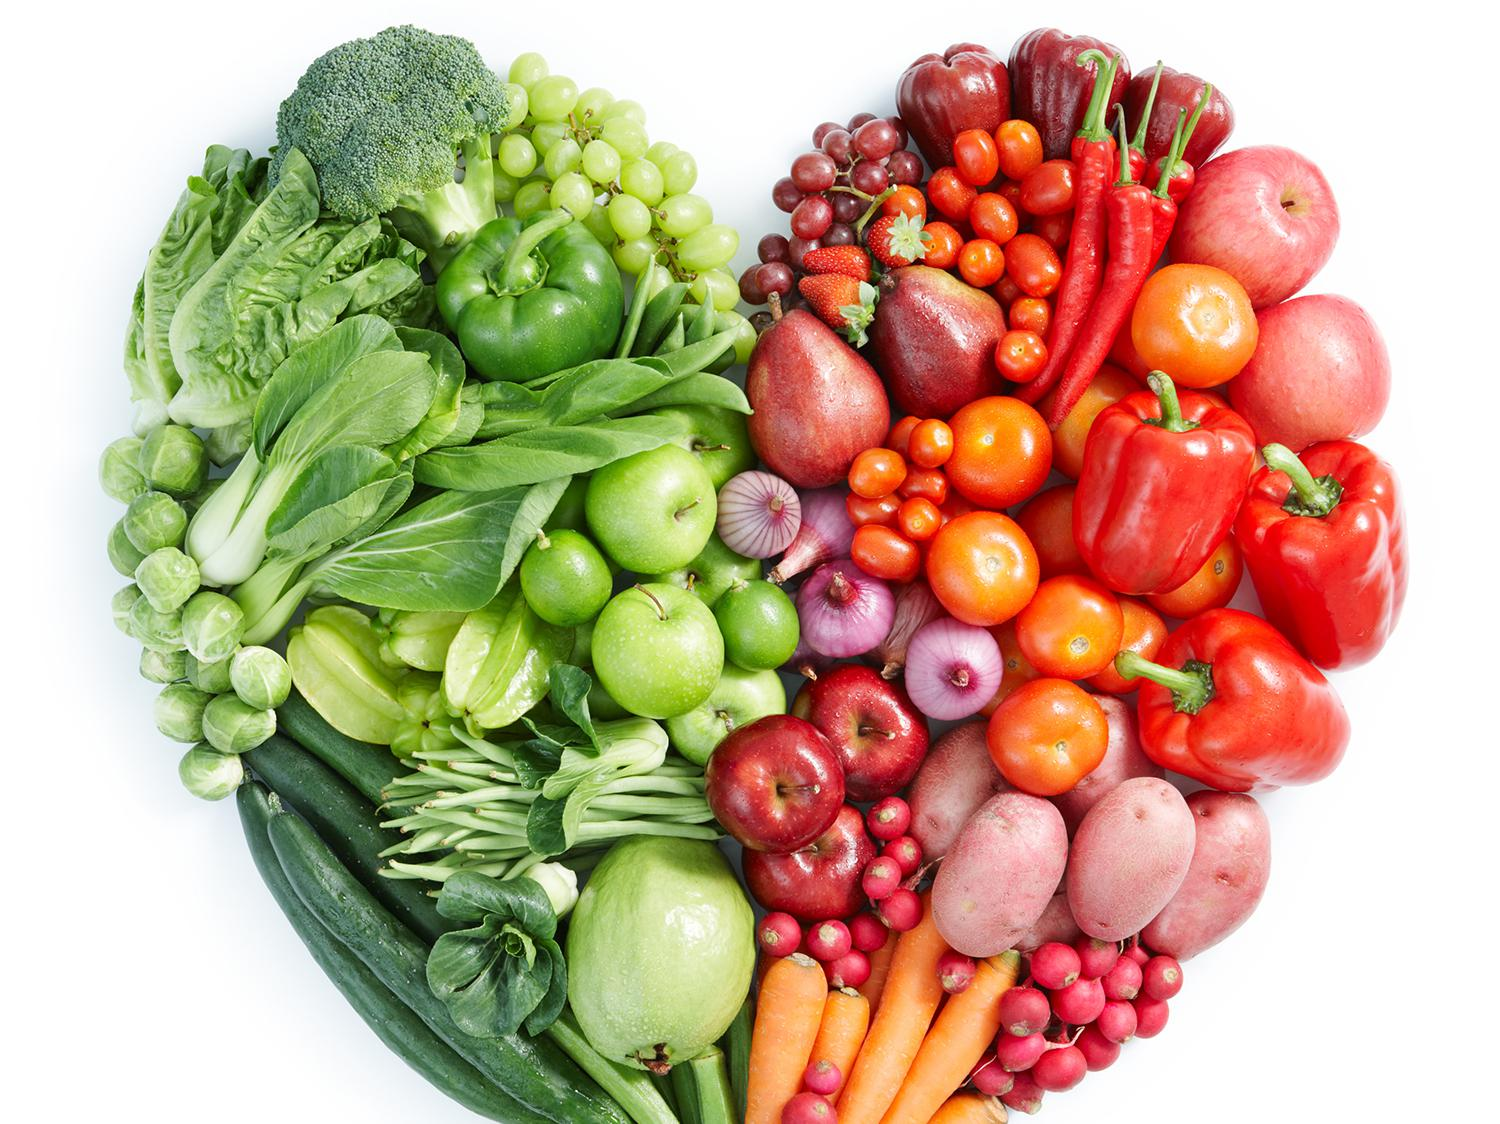 An assortment of green, orange, and red vegetables are arranged in a heart shape.